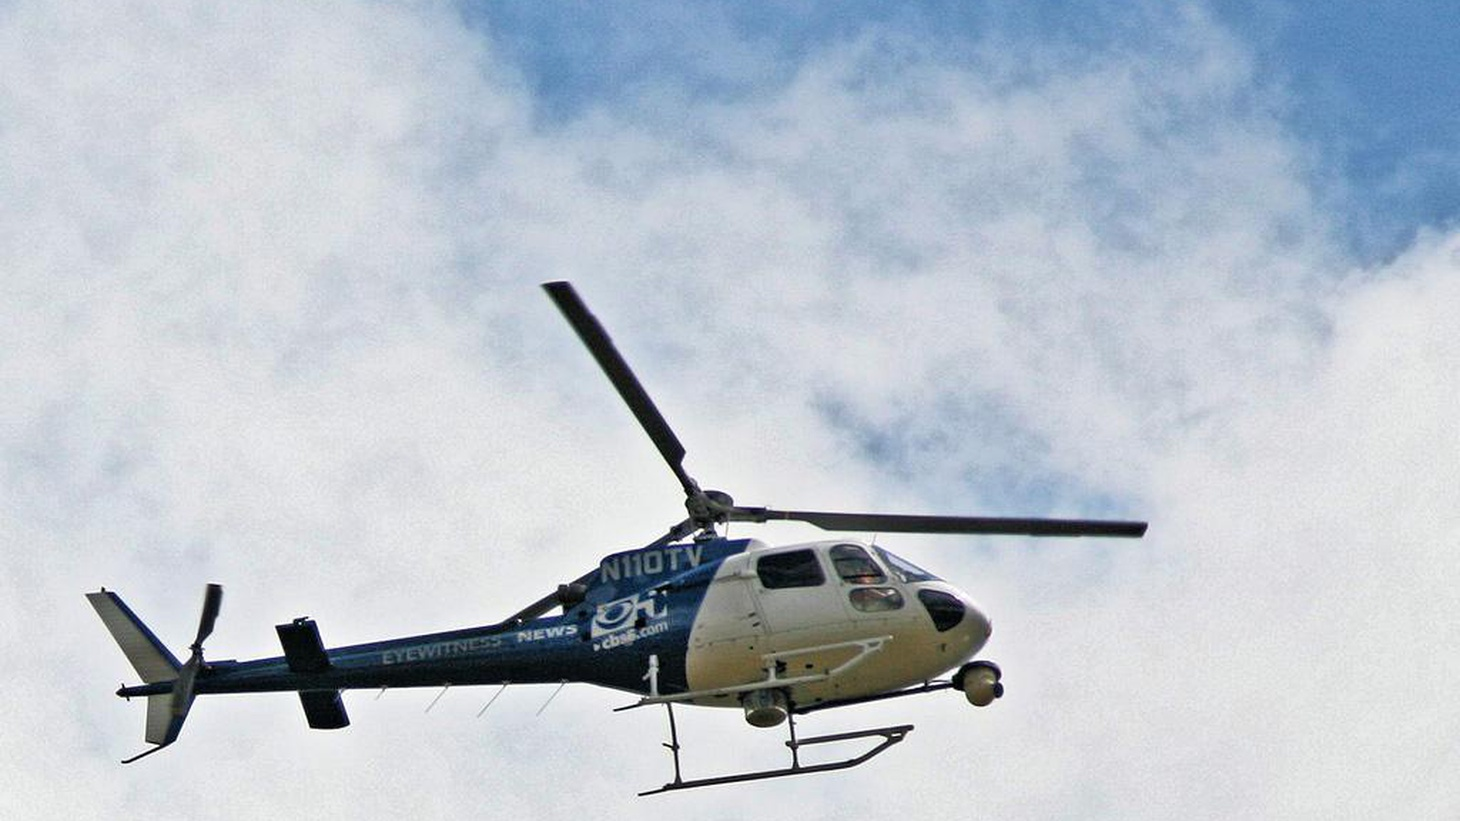 The LA skies are filled with noisy helicopters -- for news, law enforcement and tourists. We hear why many are still unhappy despite a new law signed by President Obama.